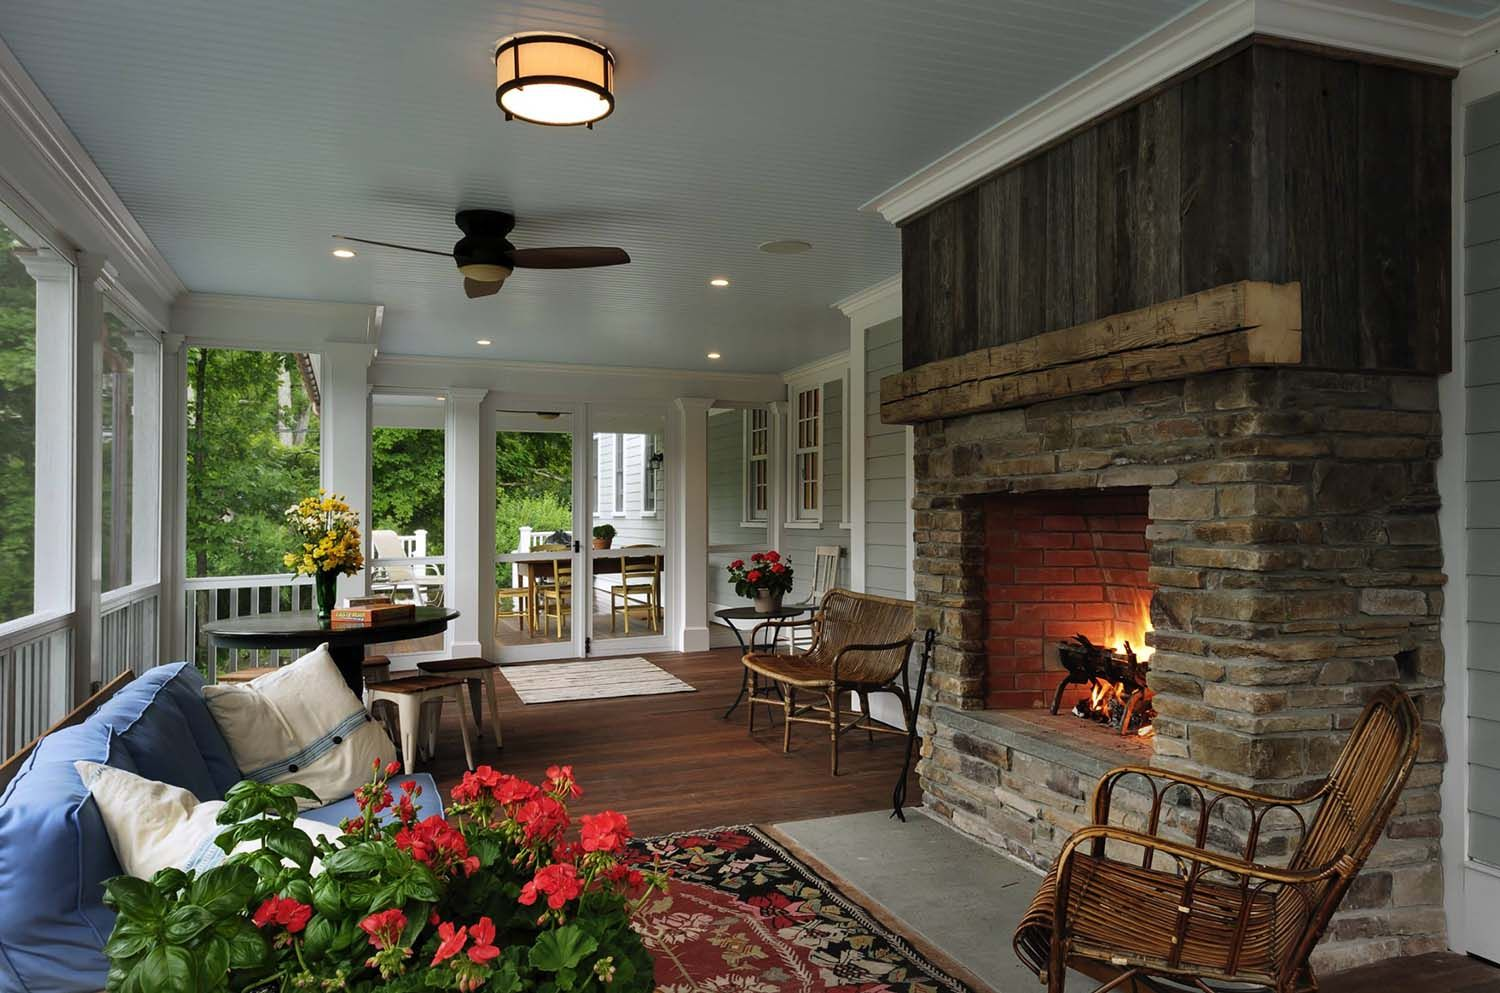 45 Amazingly Cozy And Relaxing Screened Porch Design Ideas Porch Design Traditional Porch Porch Fireplace